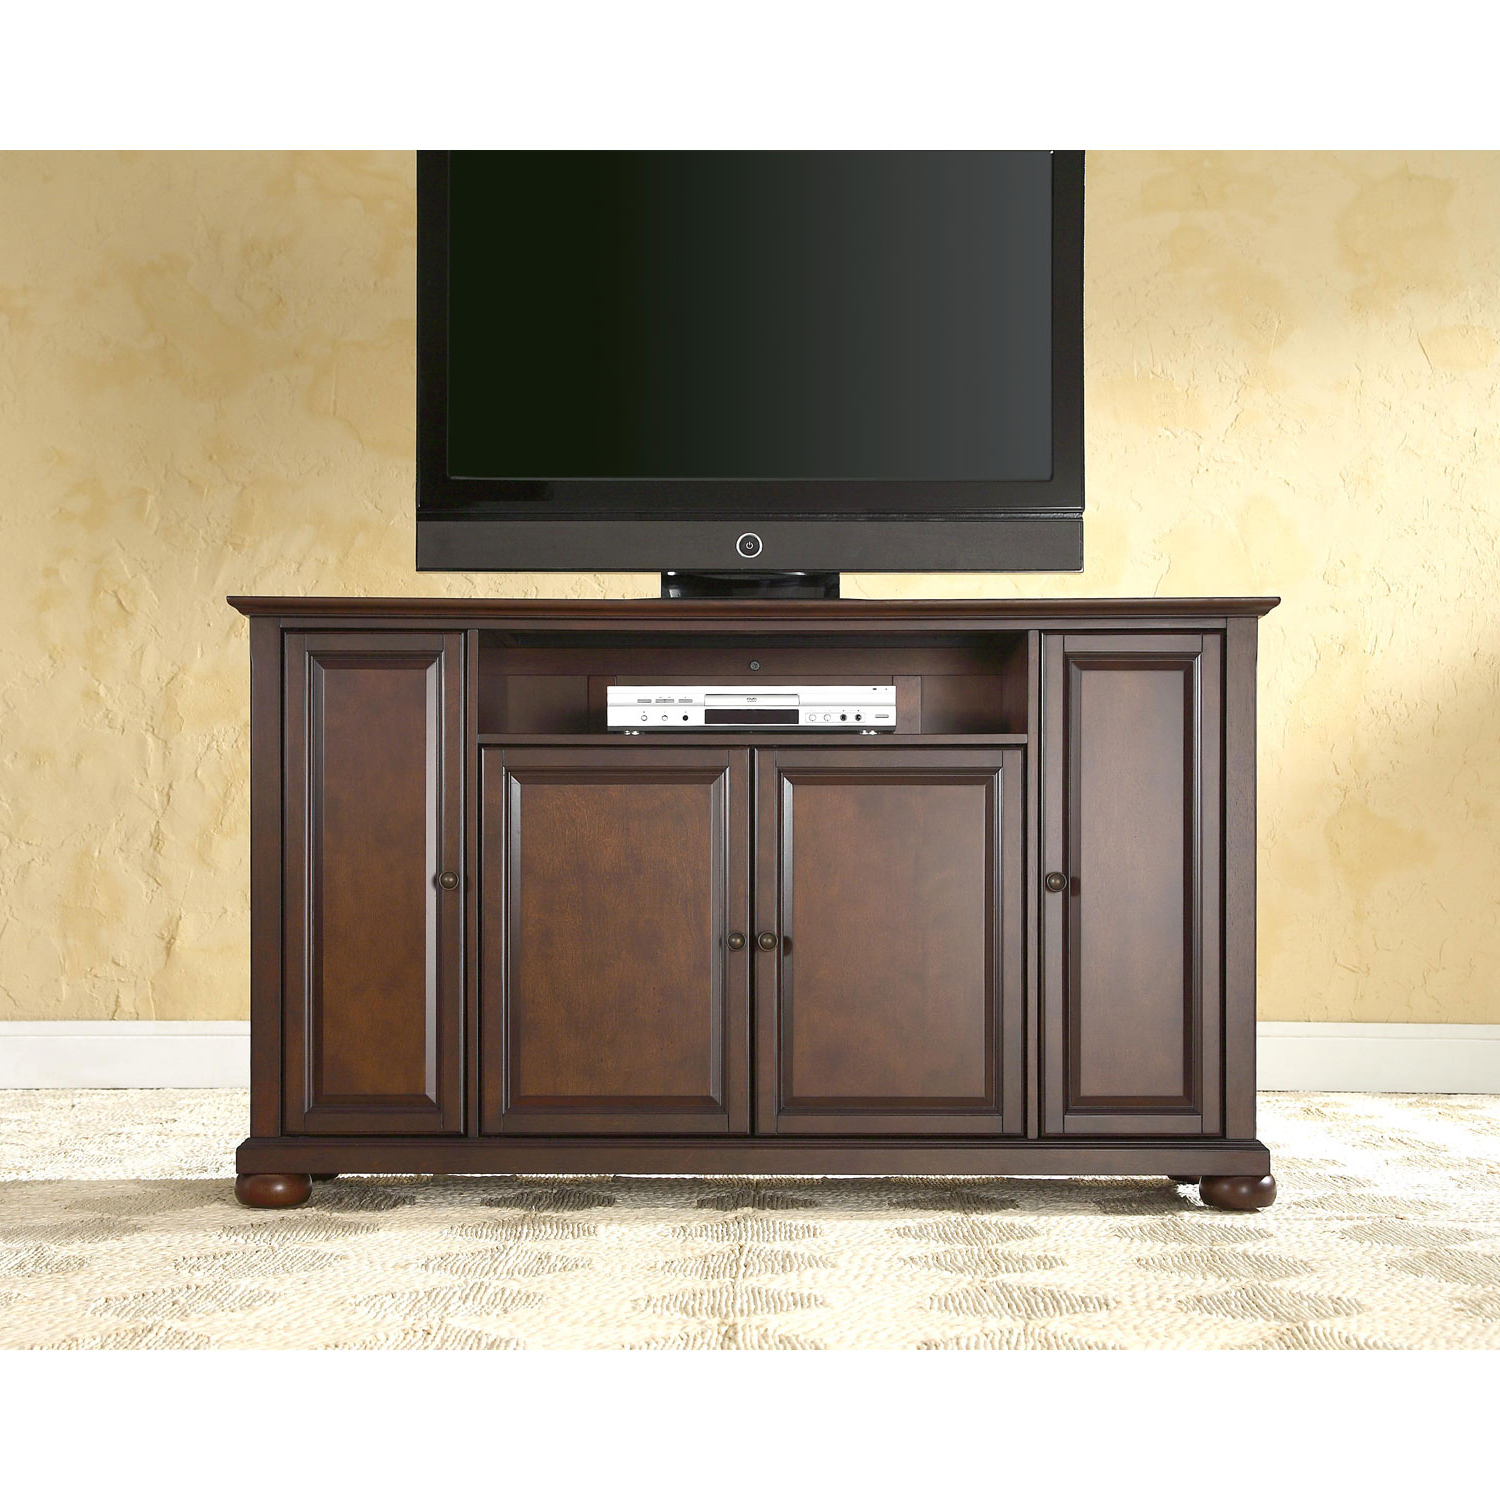 Tv Stand Walmart Corner 60 Inch Flat Screen Target Wide Black With Intended For Recent Corner Tv Stands For 60 Inch Flat Screens (View 16 of 20)